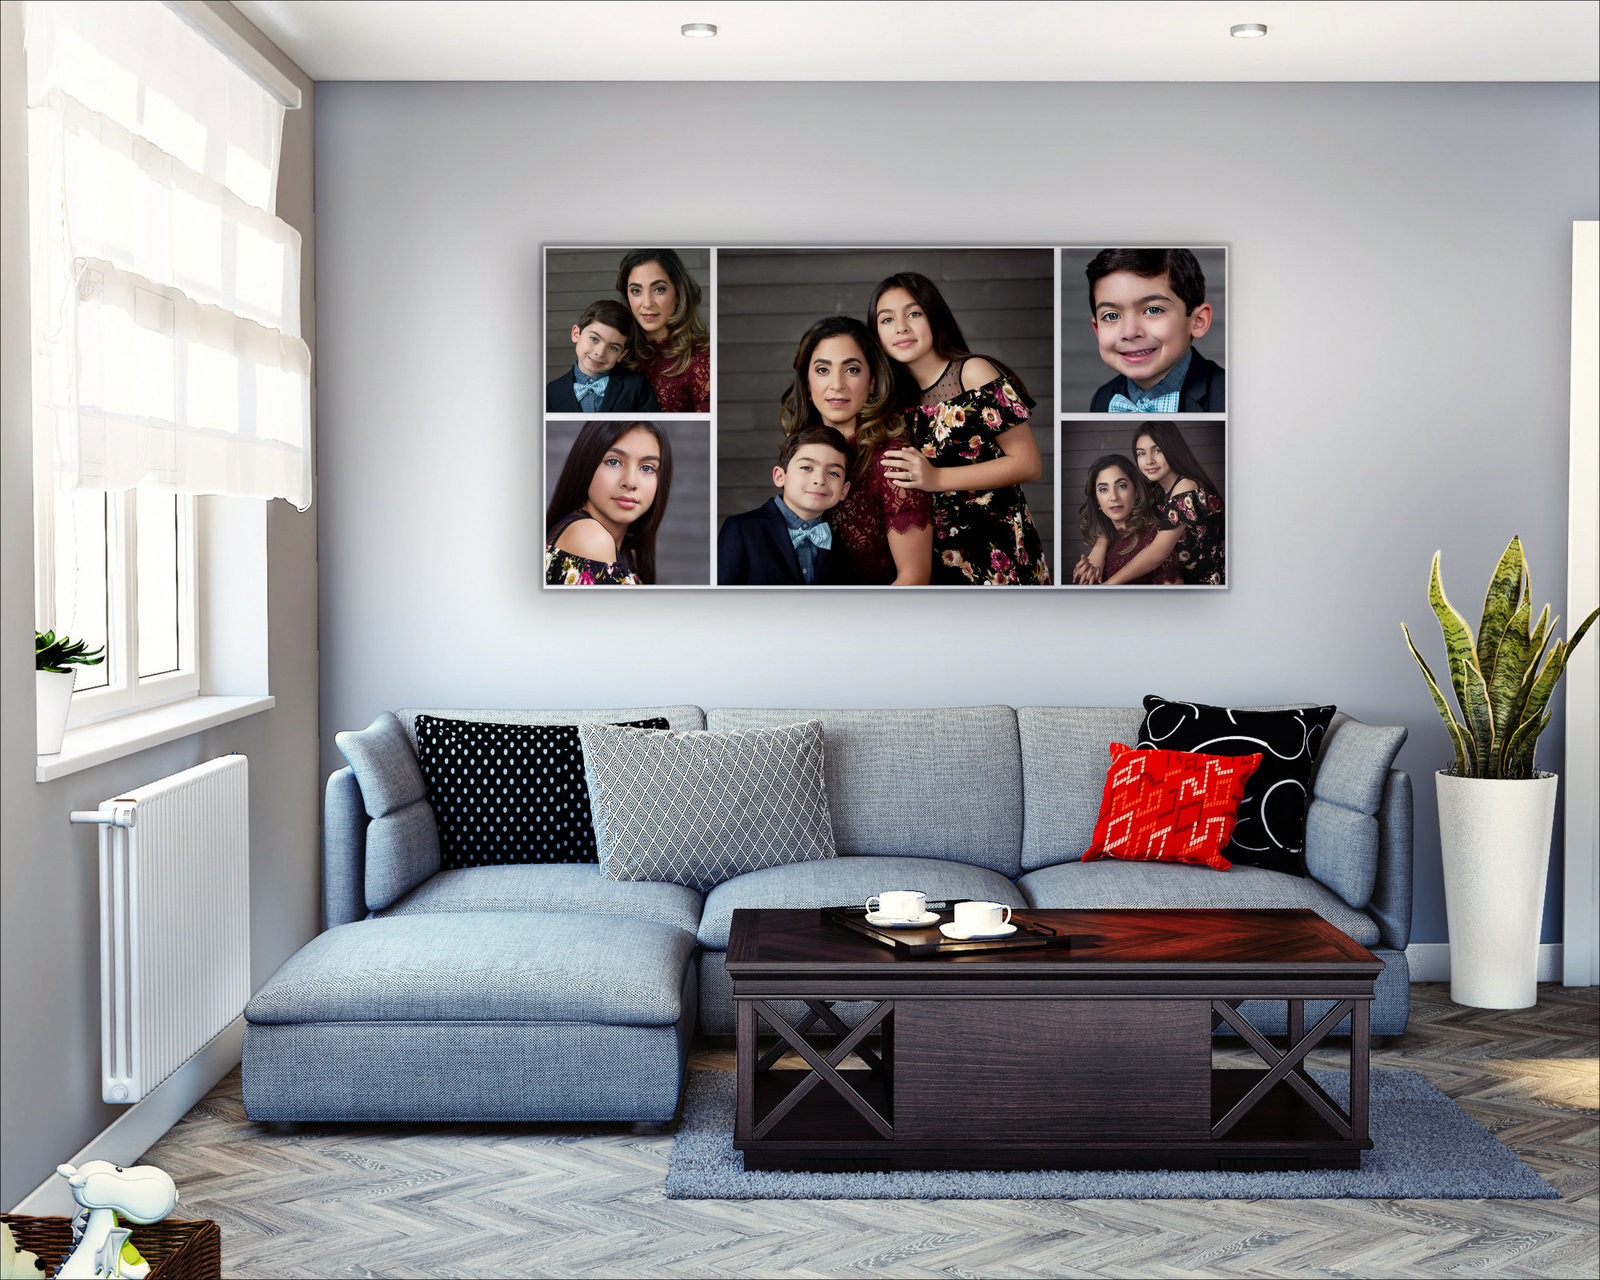 living-room-family-portraits-photo-inspiration-ideas-forever-collection-chris-bojanovich-portraits-greenwich-ct